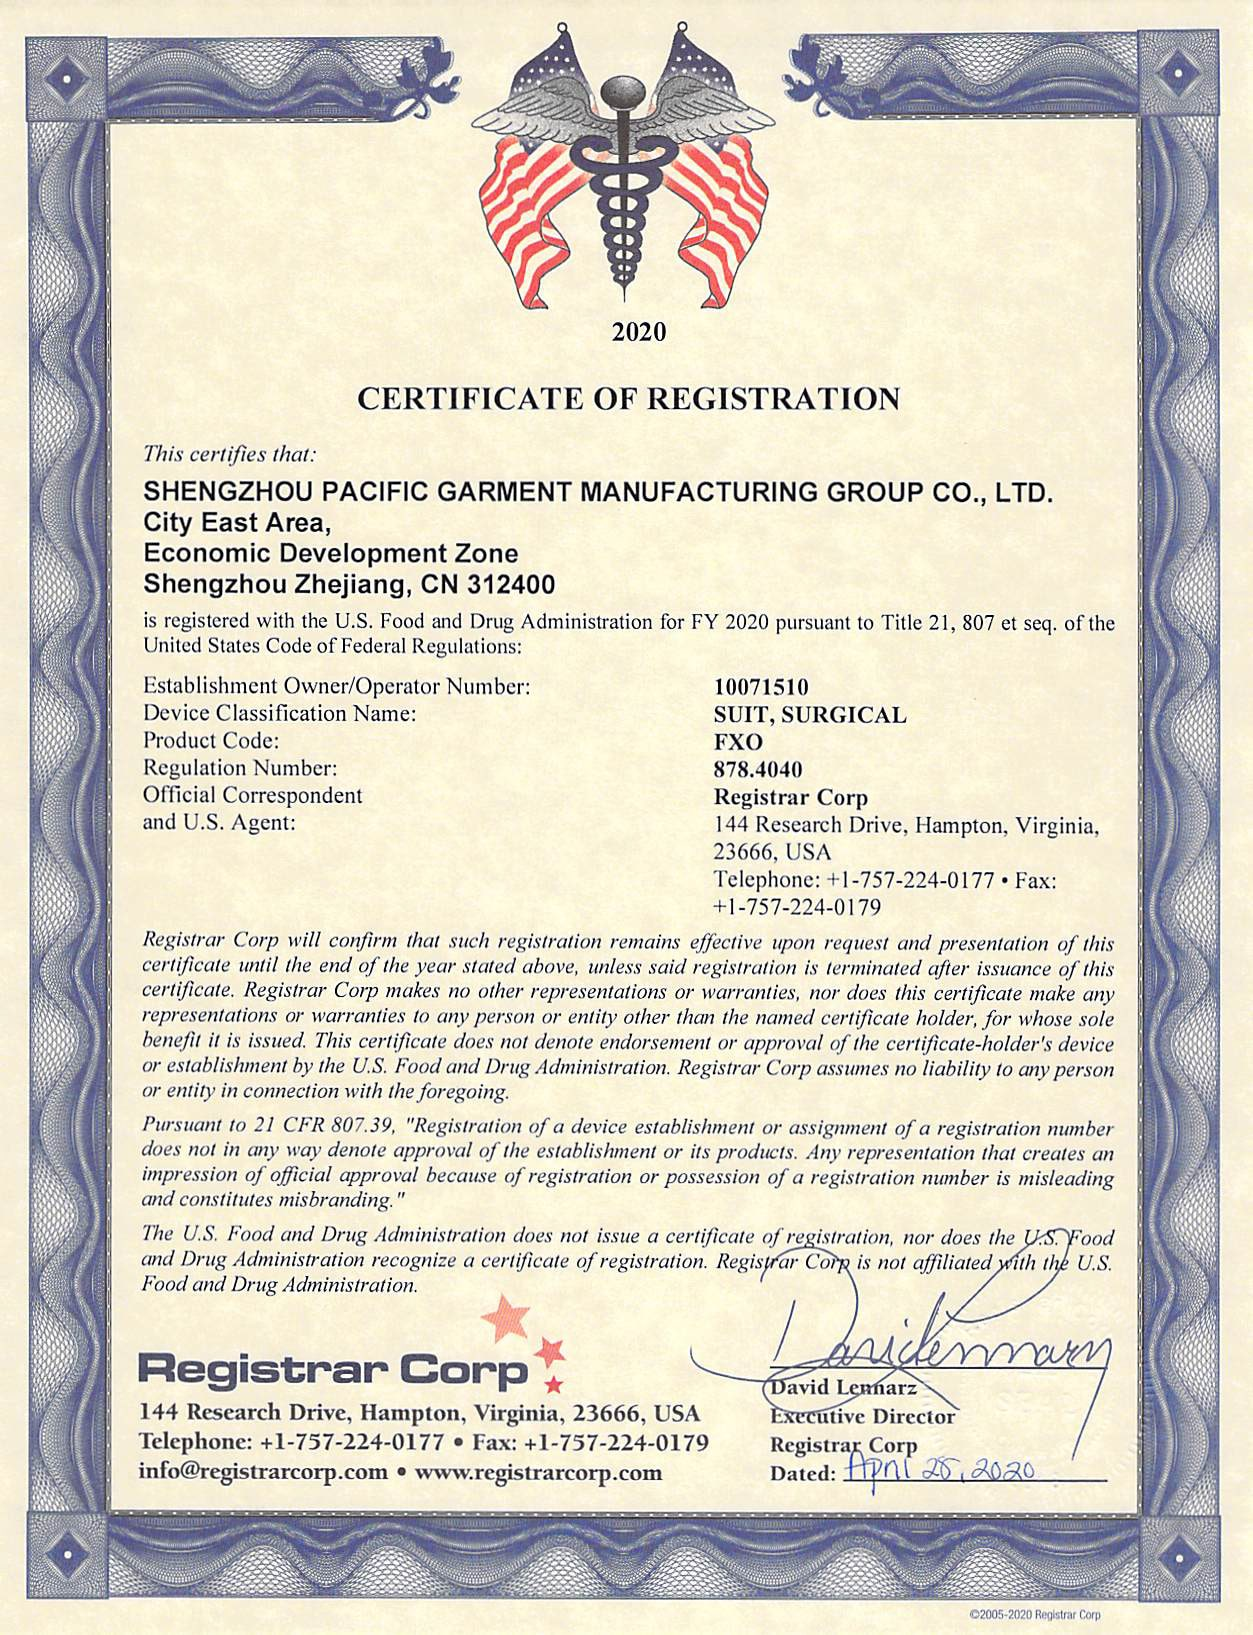 cc-certificates-suit-surgical-min.jpg